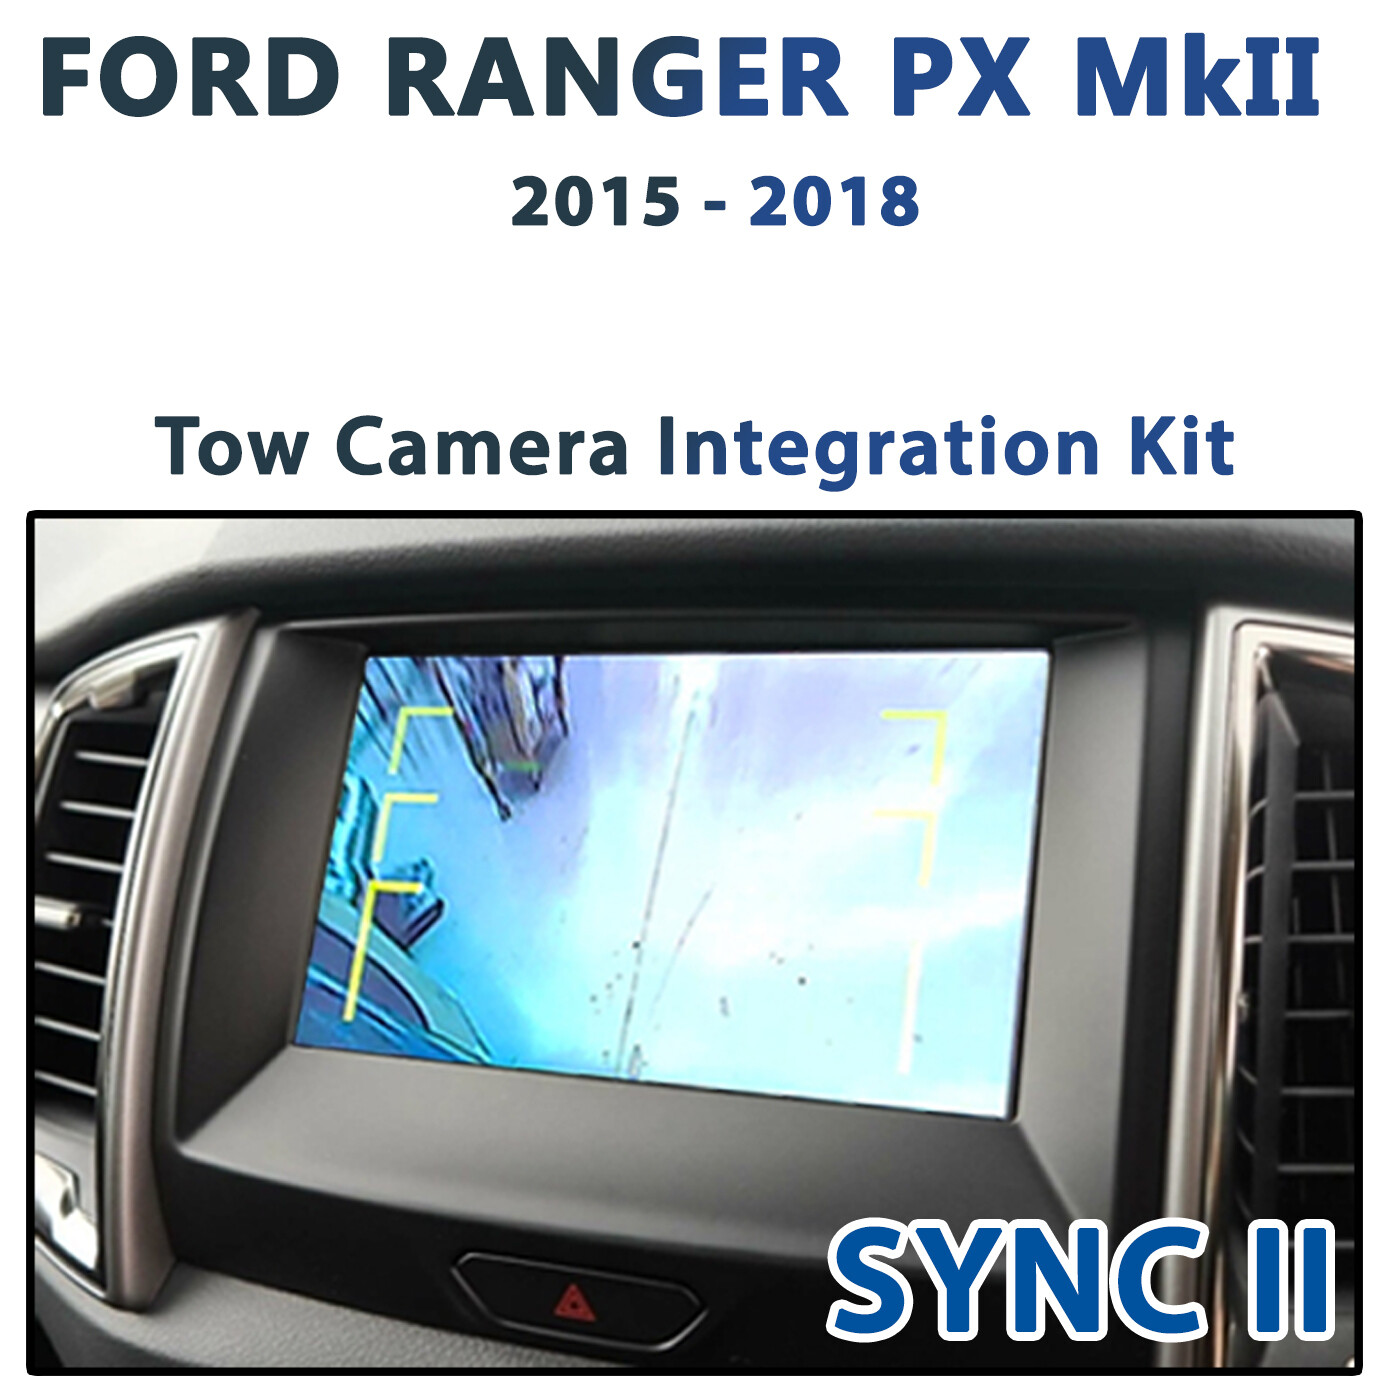 Ford Ranger PX MK II - Sync 2 Integrated Caravan / Towing Camera add on pack